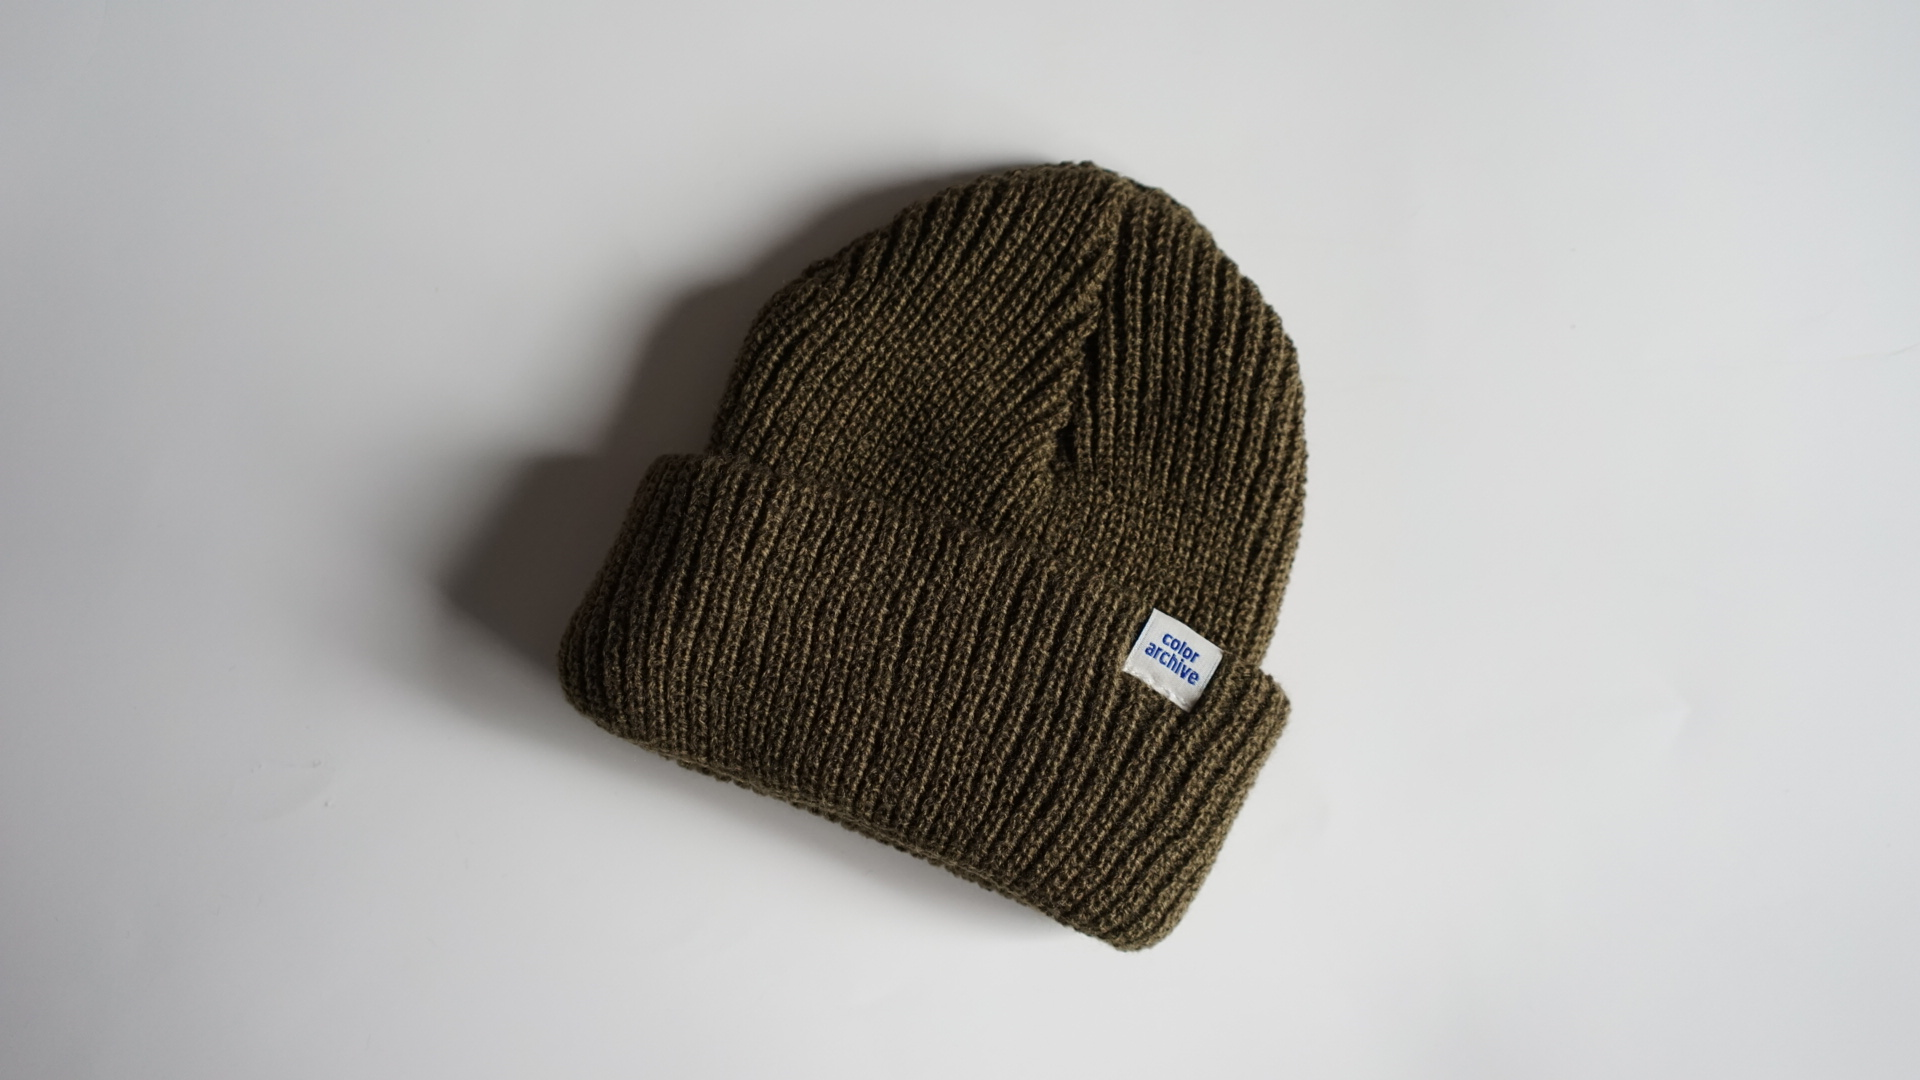 CA ESSENTIAL BEANIE - OLIVE  HEAVYWEIGHT ACRYLIC BEANIE  MADE IN USA FROM START TO FINISH  100% ACRYLIC